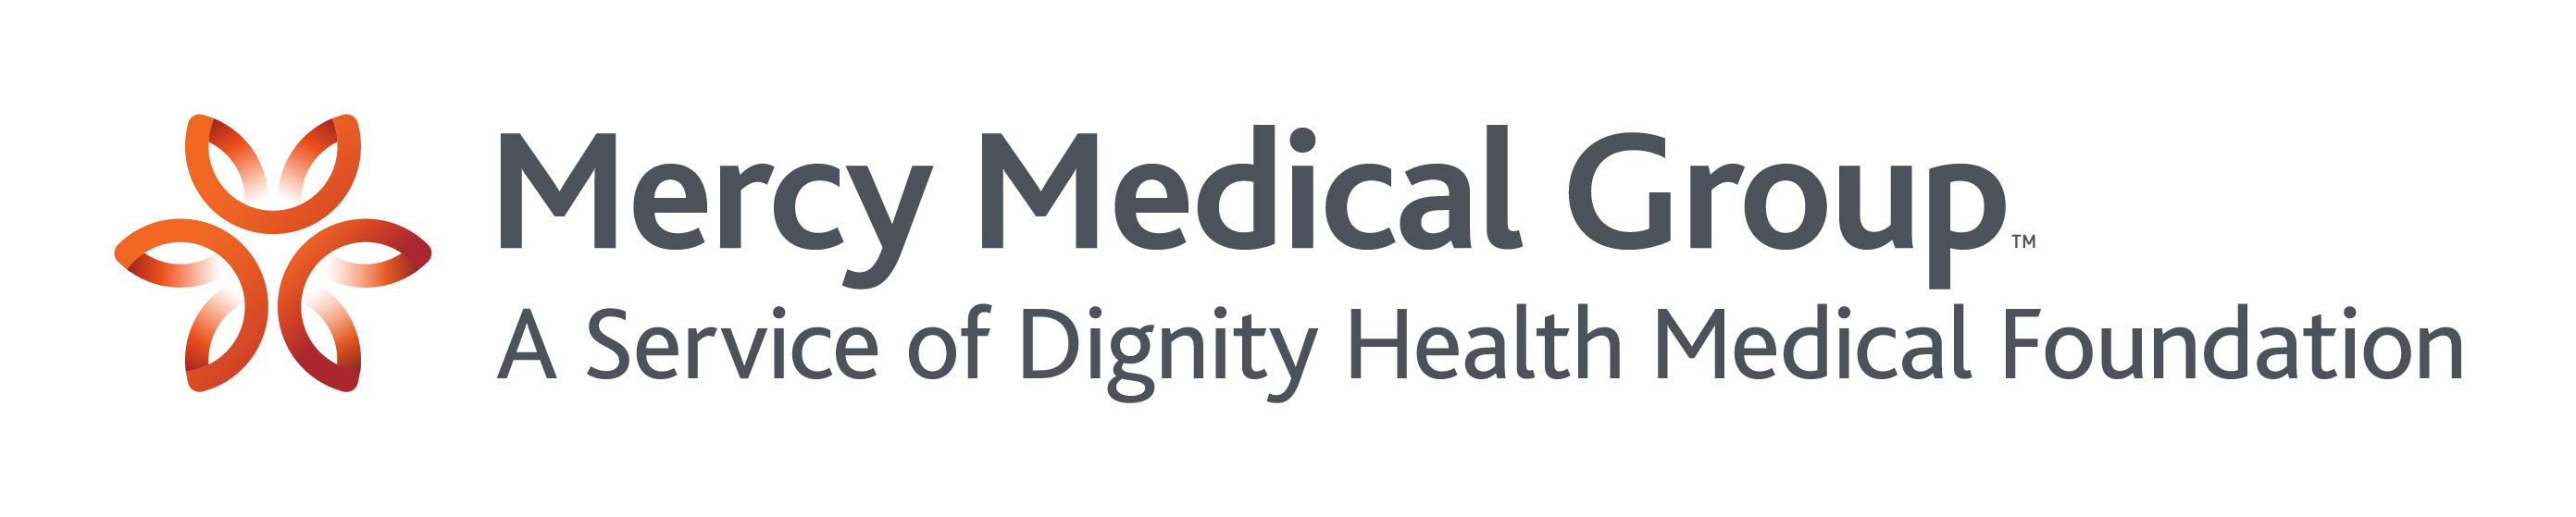 Mercy Medical's Logo